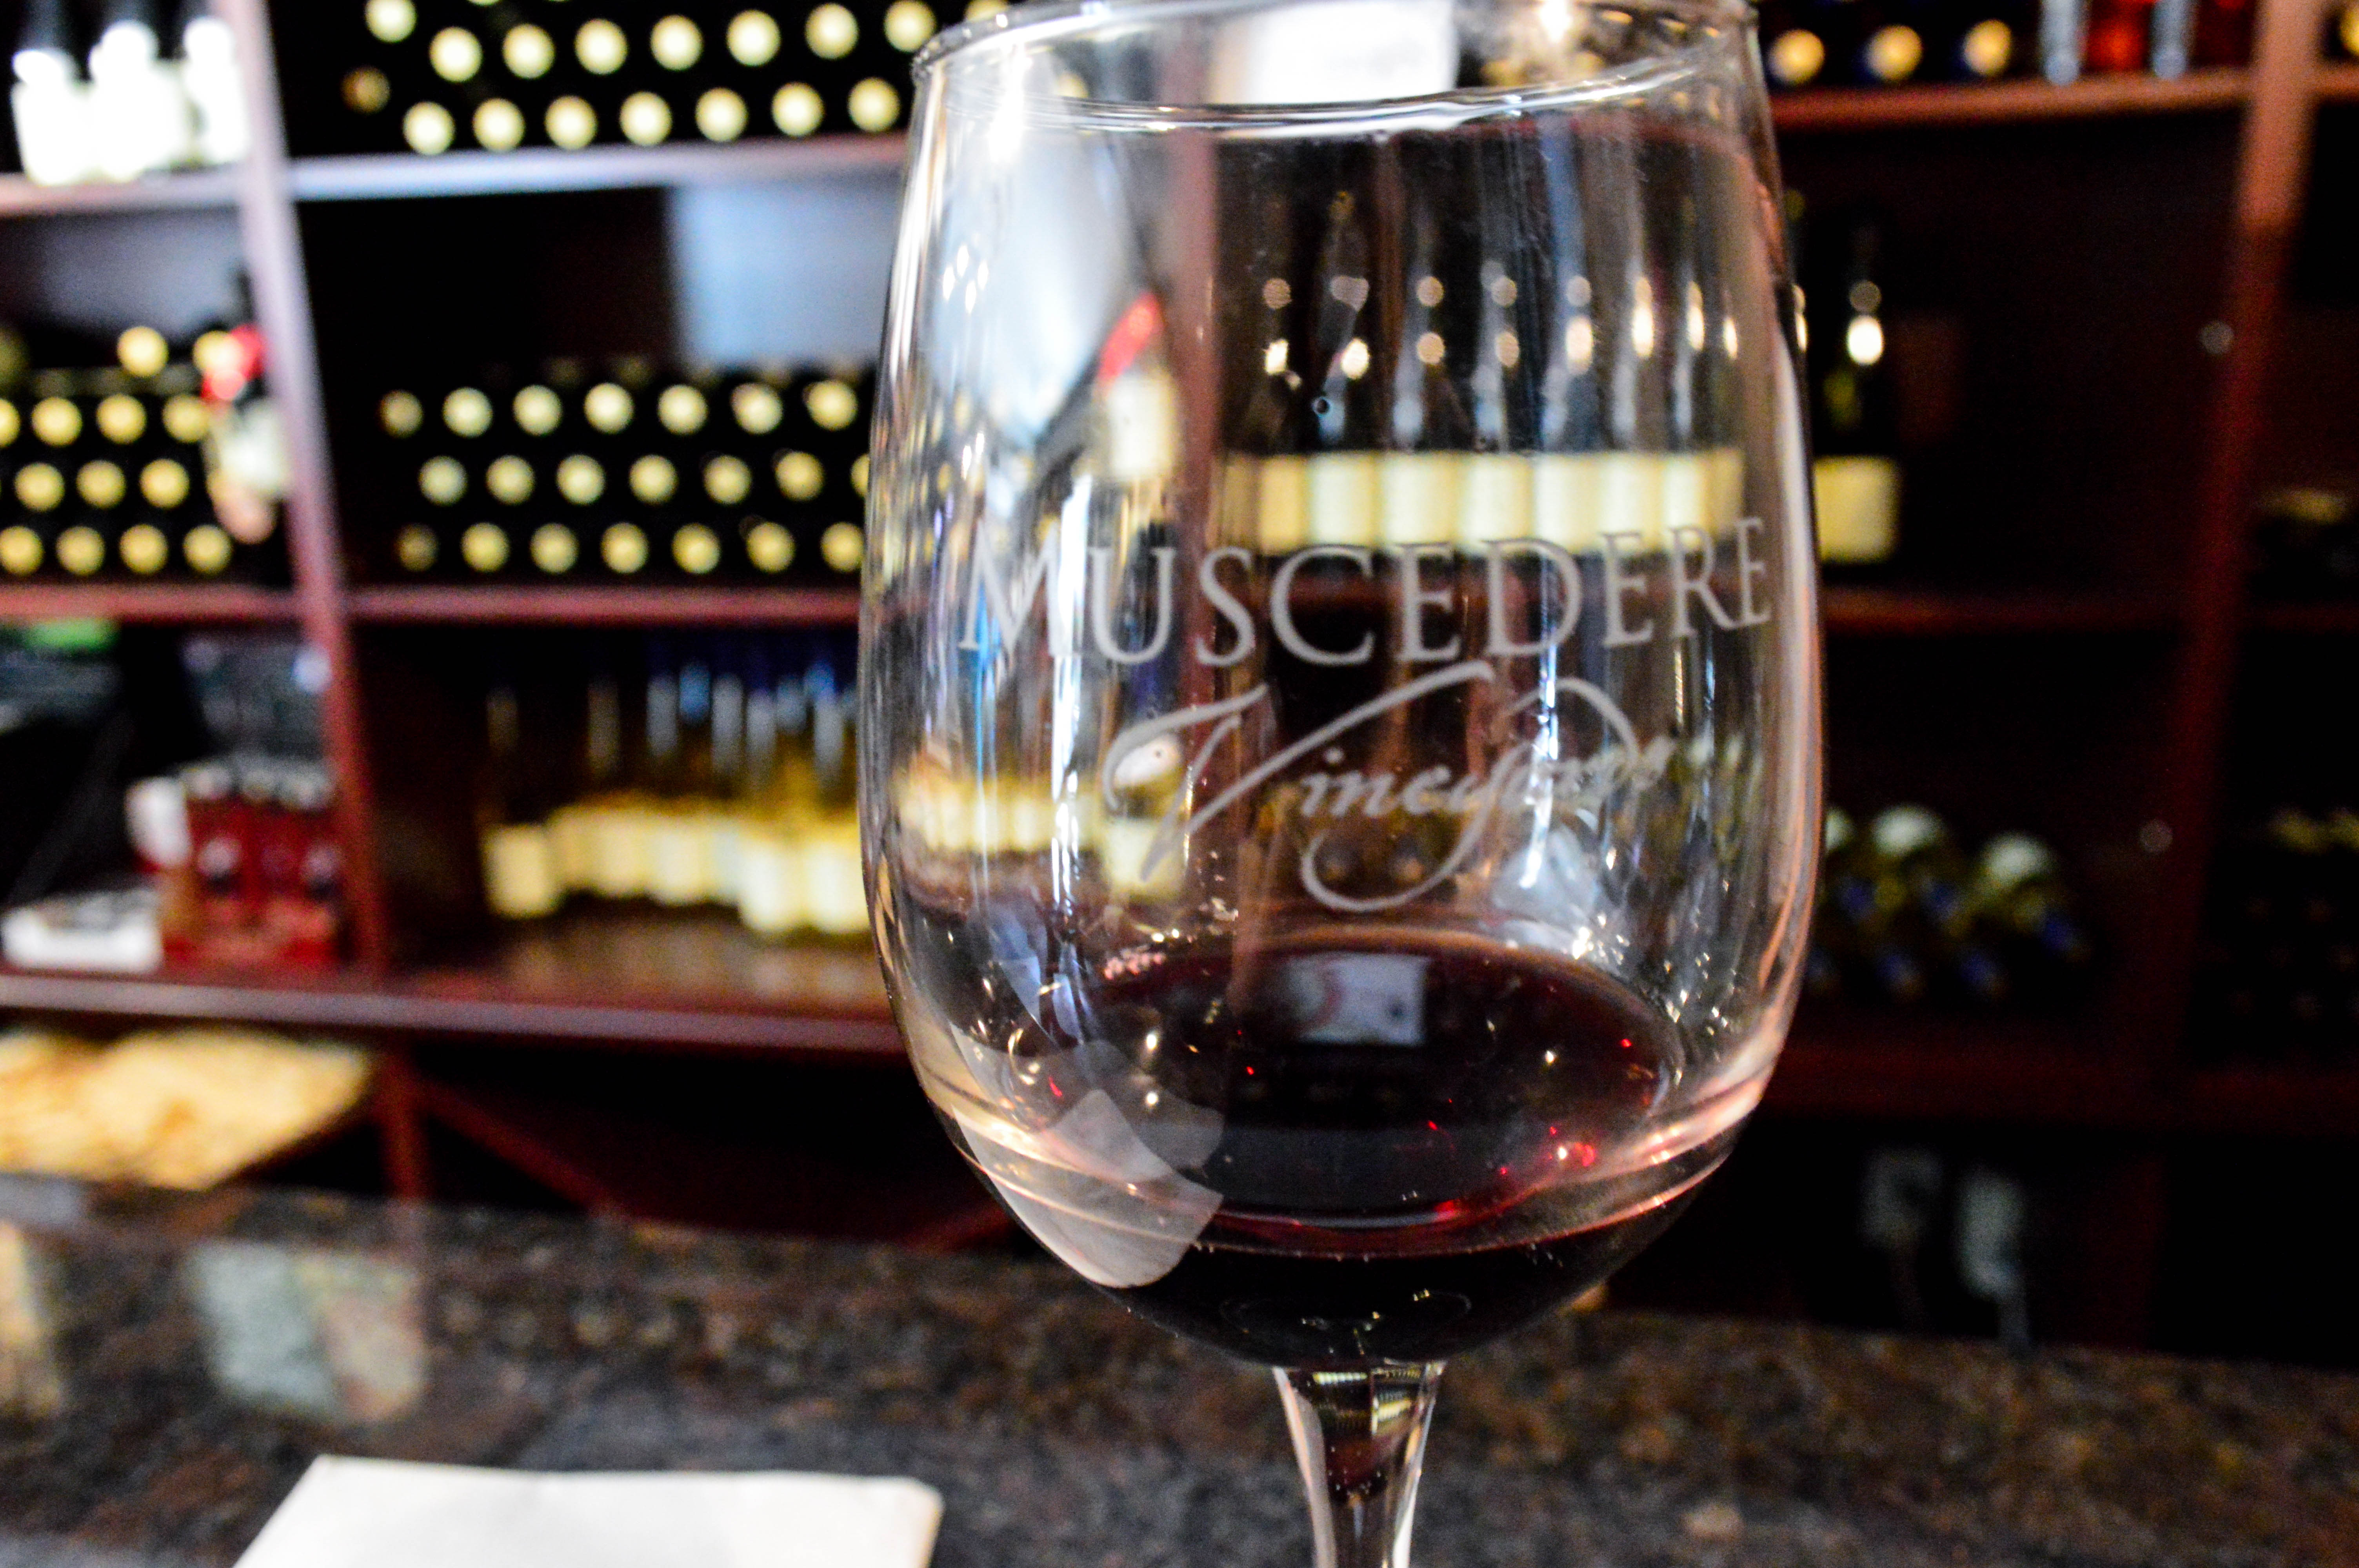 Muscedere makes wonderful, full-bodied red wines near Harrow, Ontario. PHOTO COURTESY ONTARIO'S SOUTHWEST